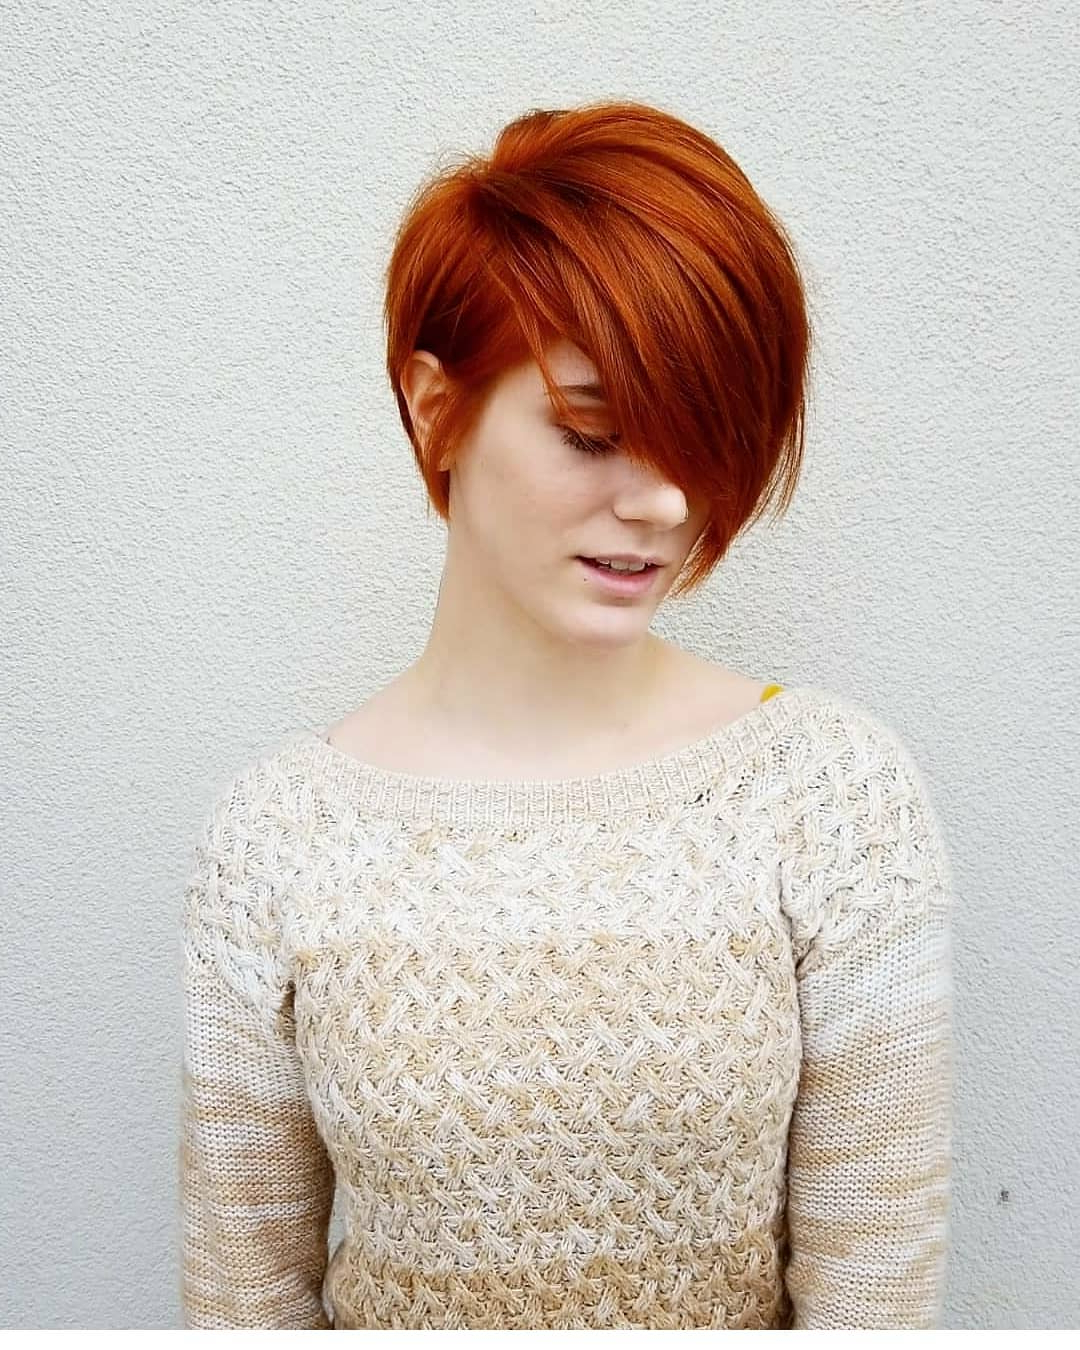 Current Asymmetrical Pixie Hairstyles With Pops Of Color In 10 Beautiful Asymmetrical Short Pixie Haircuts (View 1 of 20)